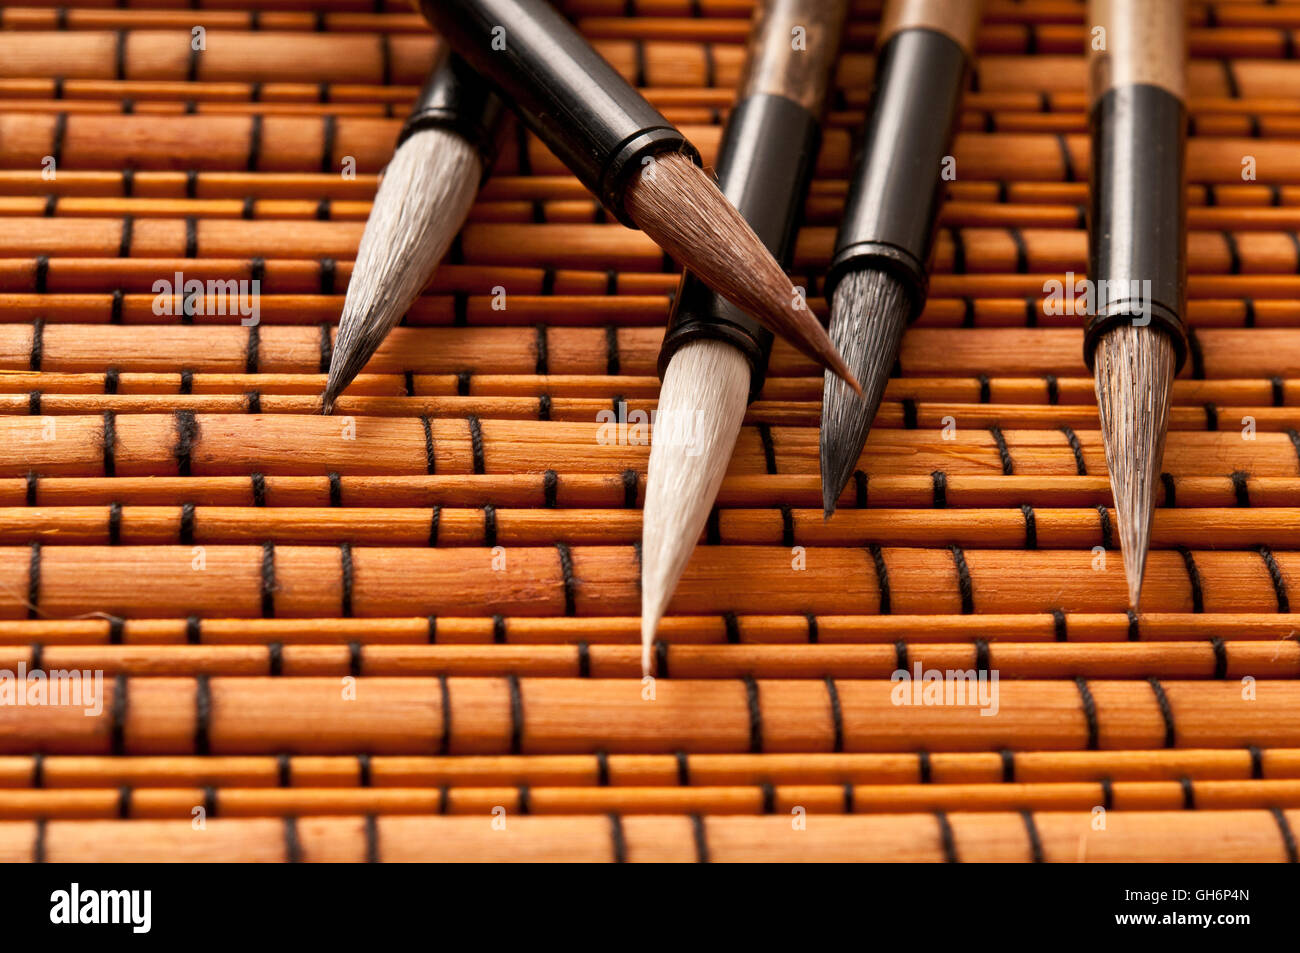 four Chinese calligraphy brushes - Stock Image